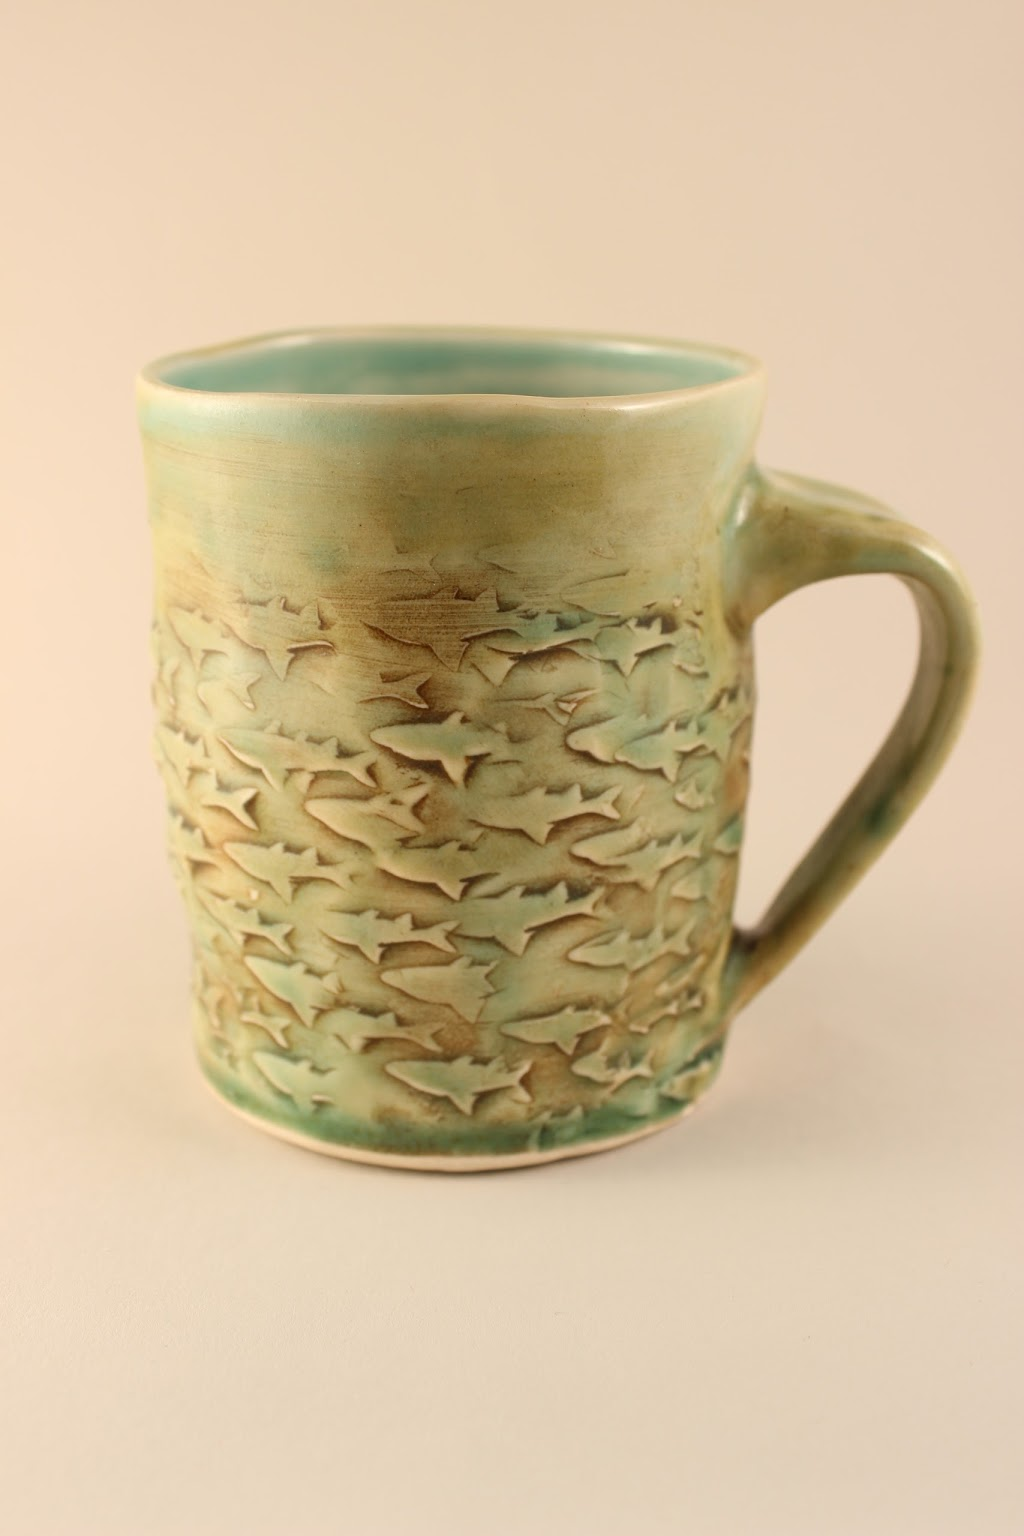 Stephen Hawes Pottery   store   31 Menno St, Waterloo, ON N2L 2A6, Canada   2266064814 OR +1 226-606-4814